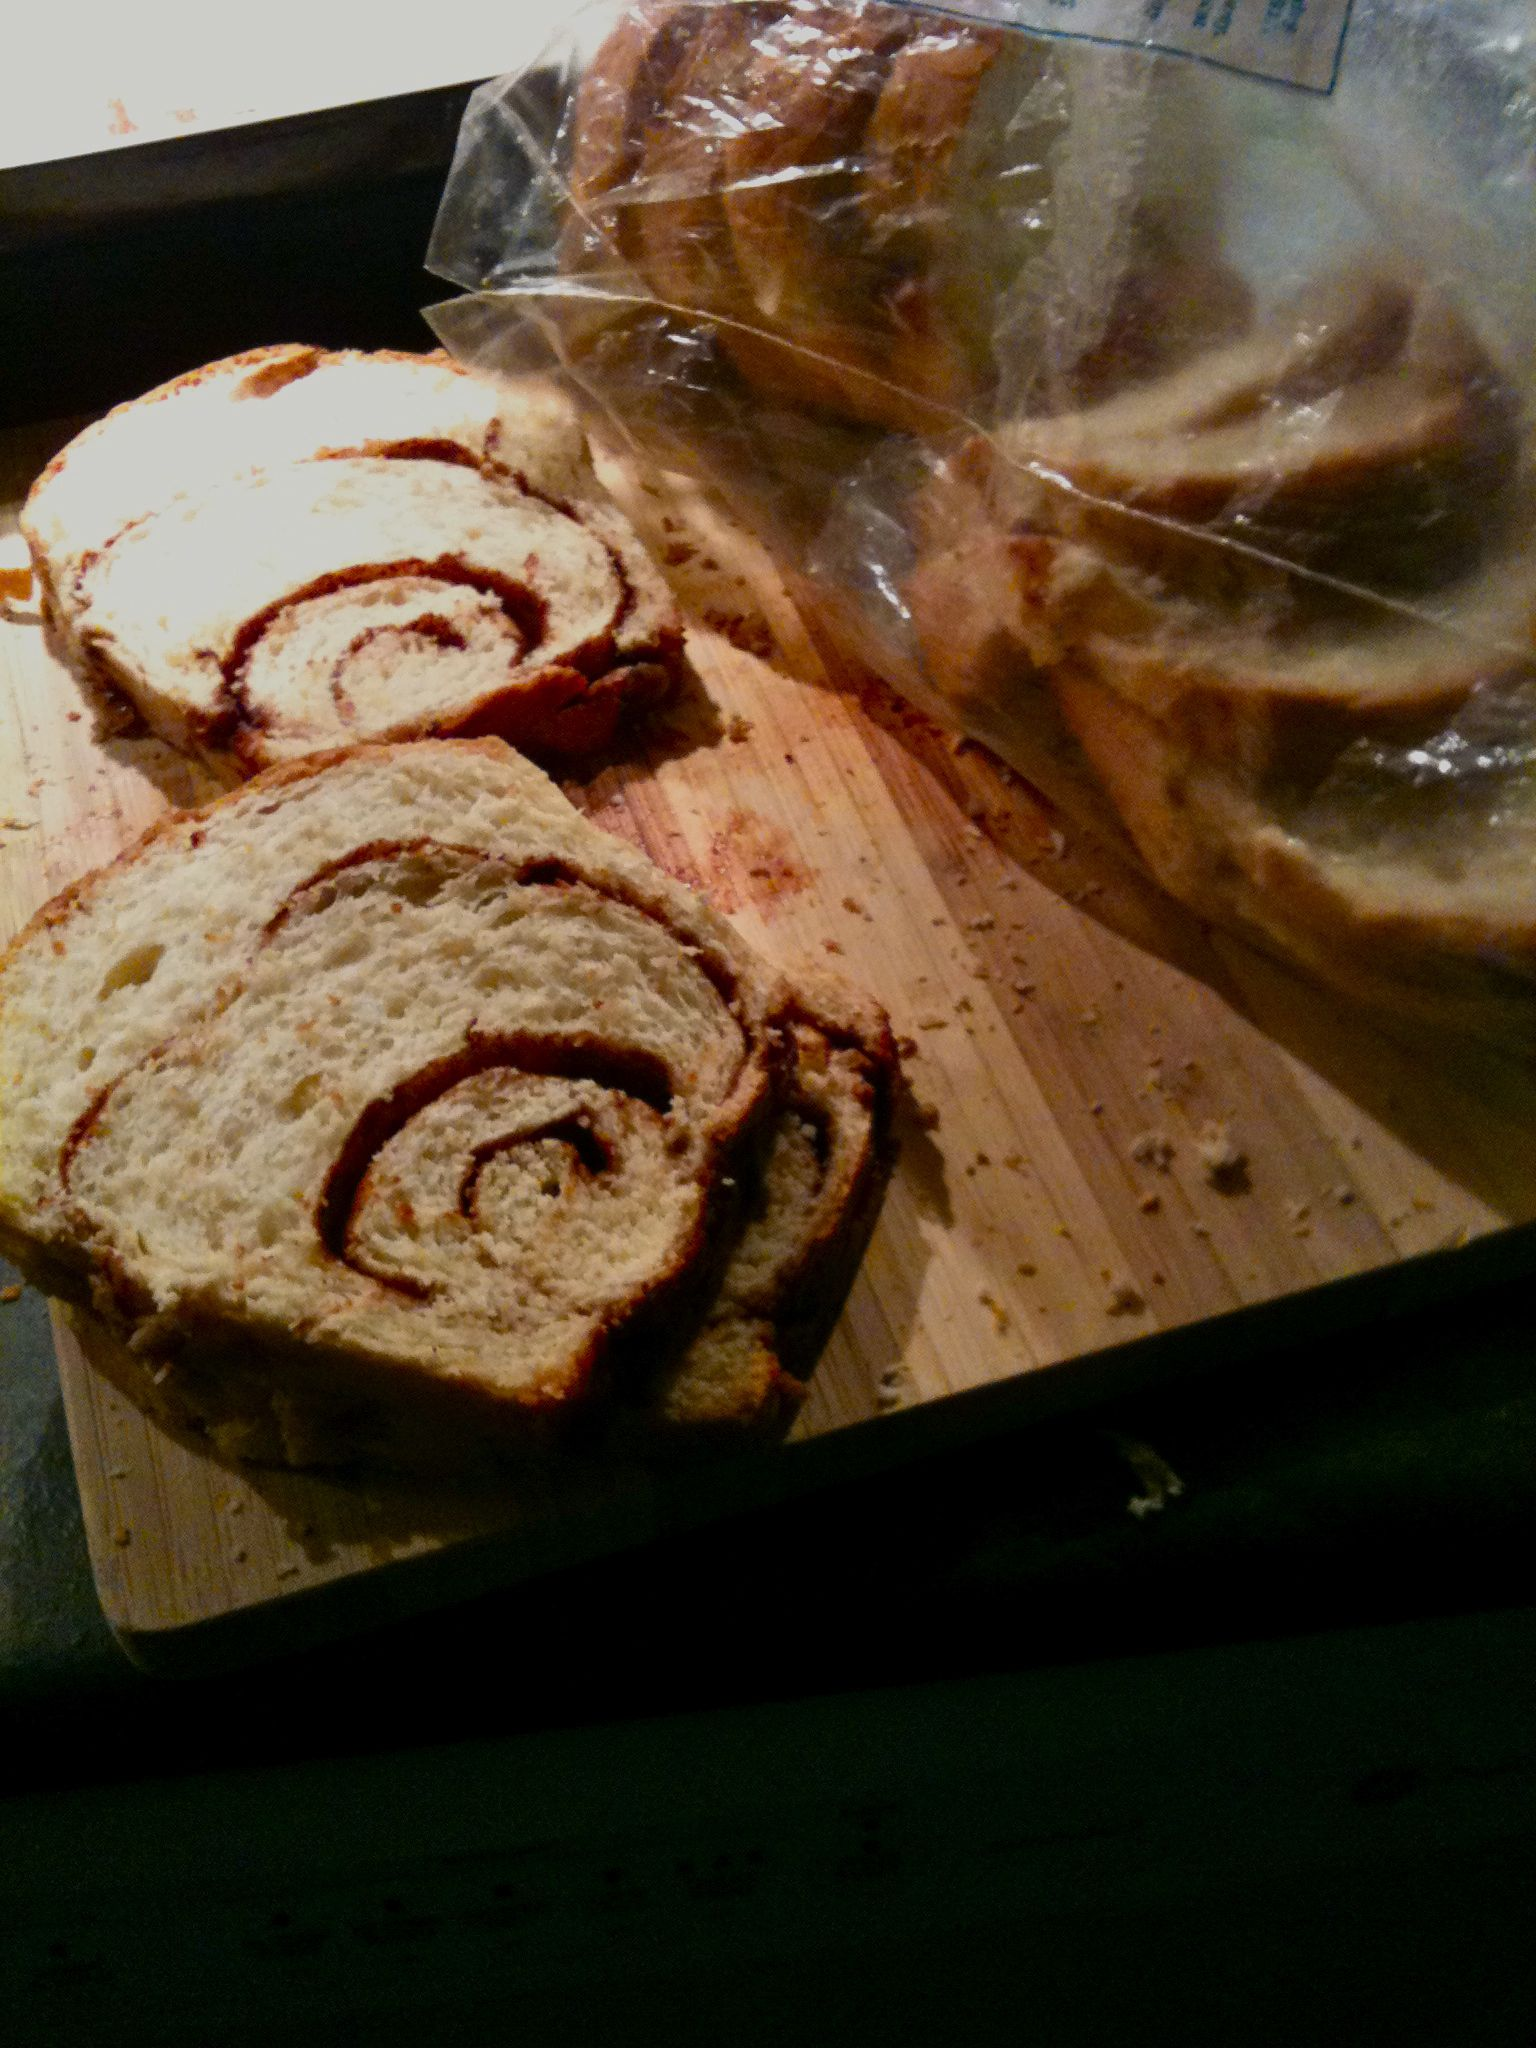 My grandmother's cinnamon bread